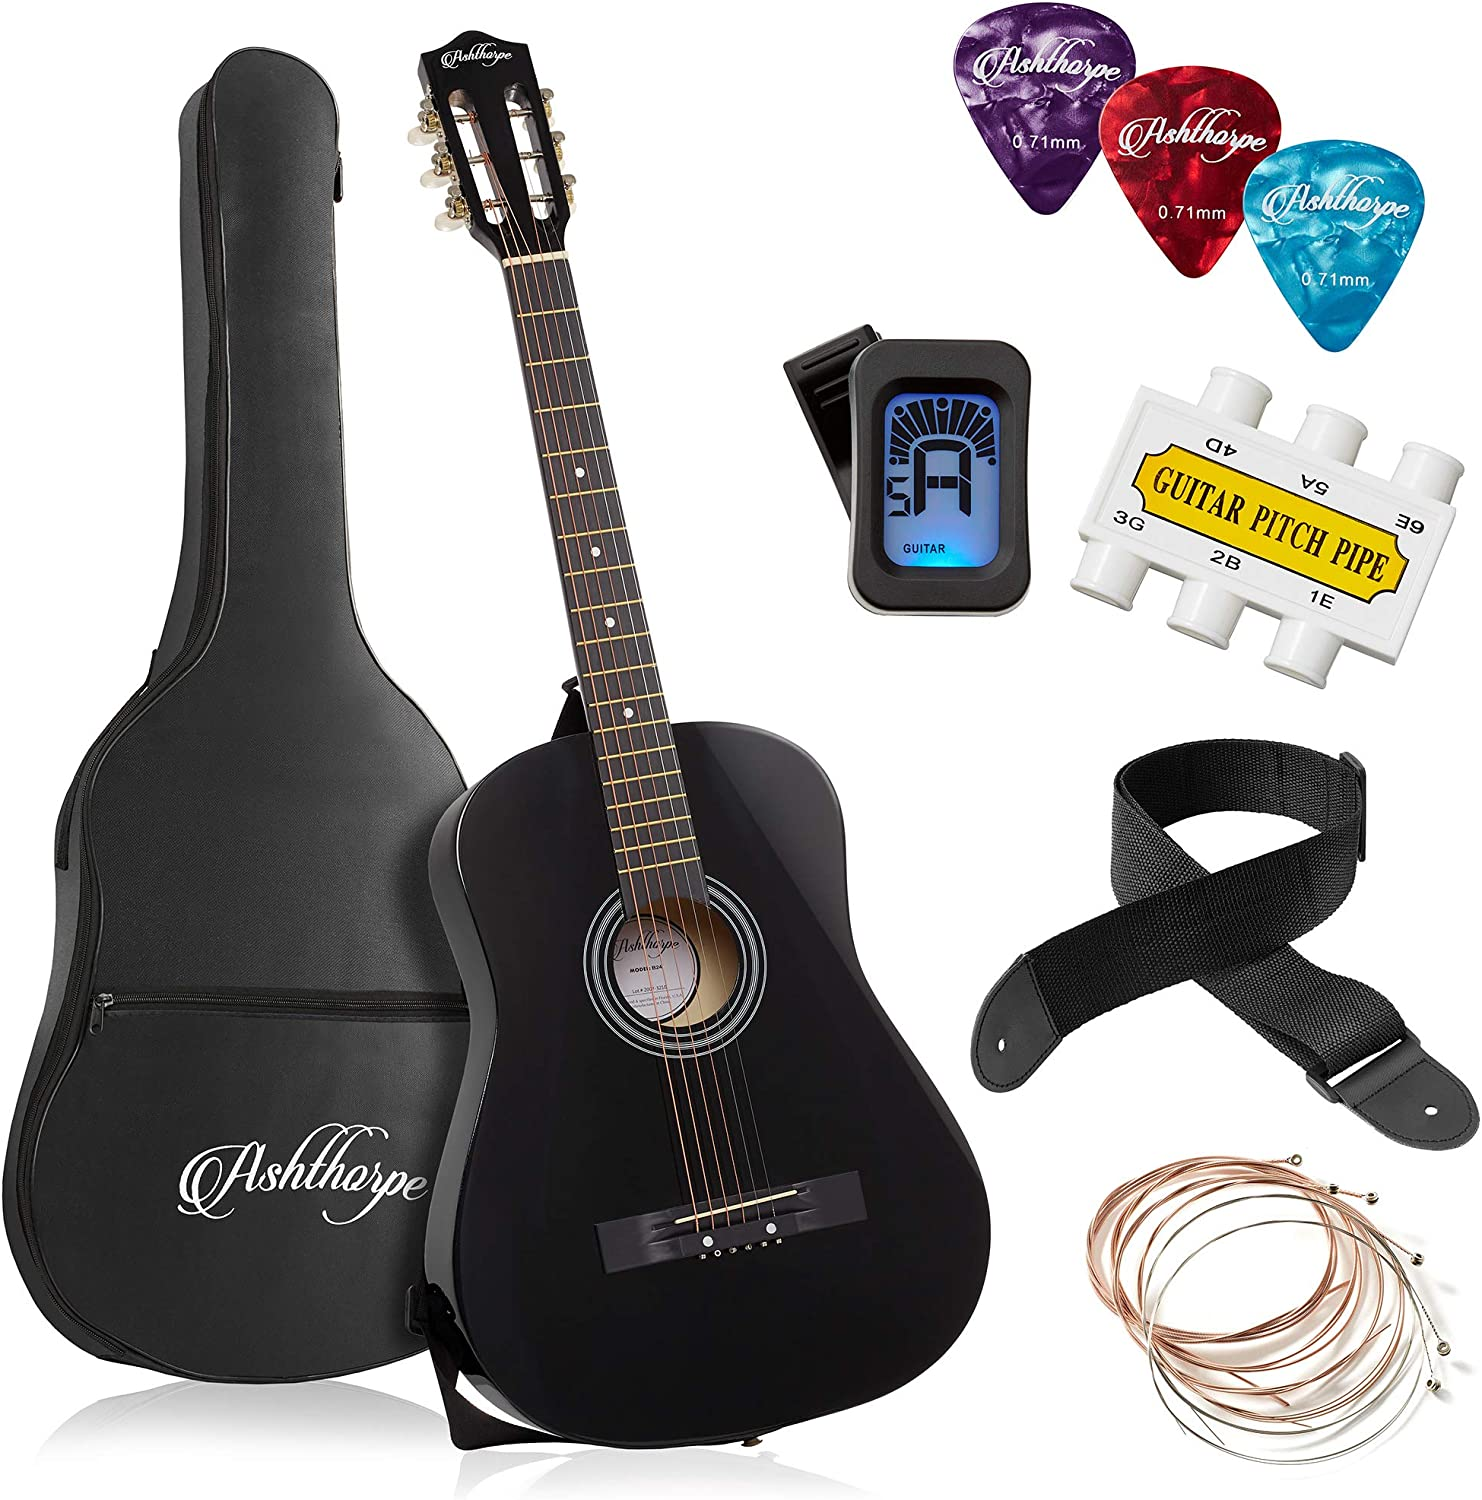 Ashthorpe Cash Popular brand in the world special price 38-inch Beginner Acoustic Basi Black Package Guitar